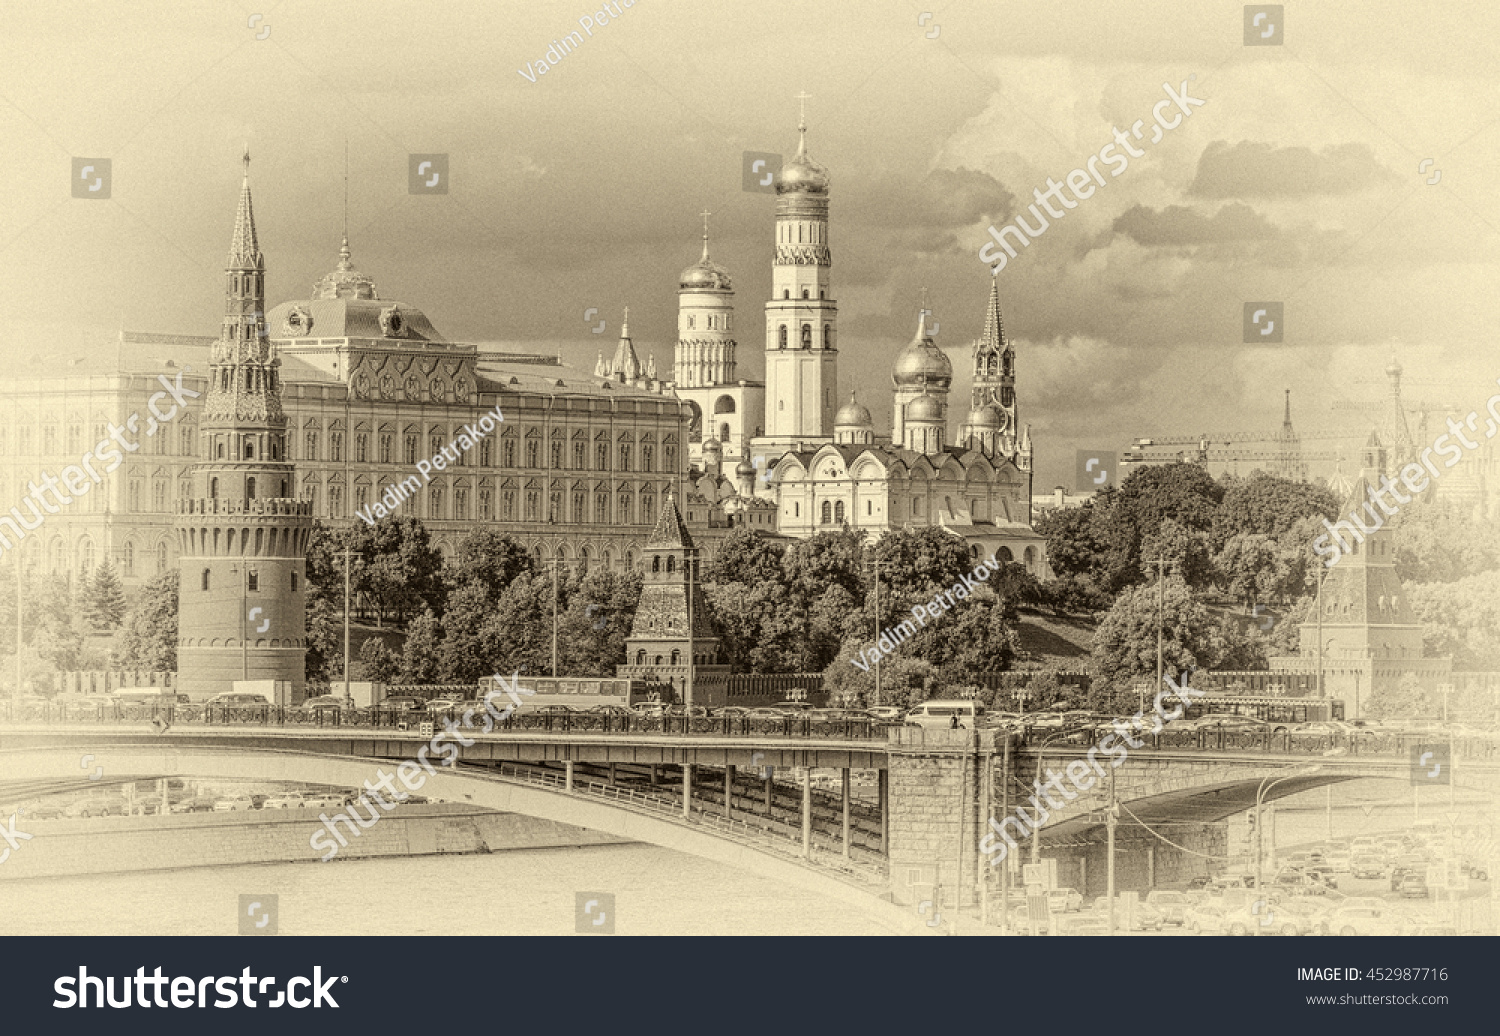 Views of the Grand Palace the Church and towers of the Moscow Kremlin Russian Federation stylized retro